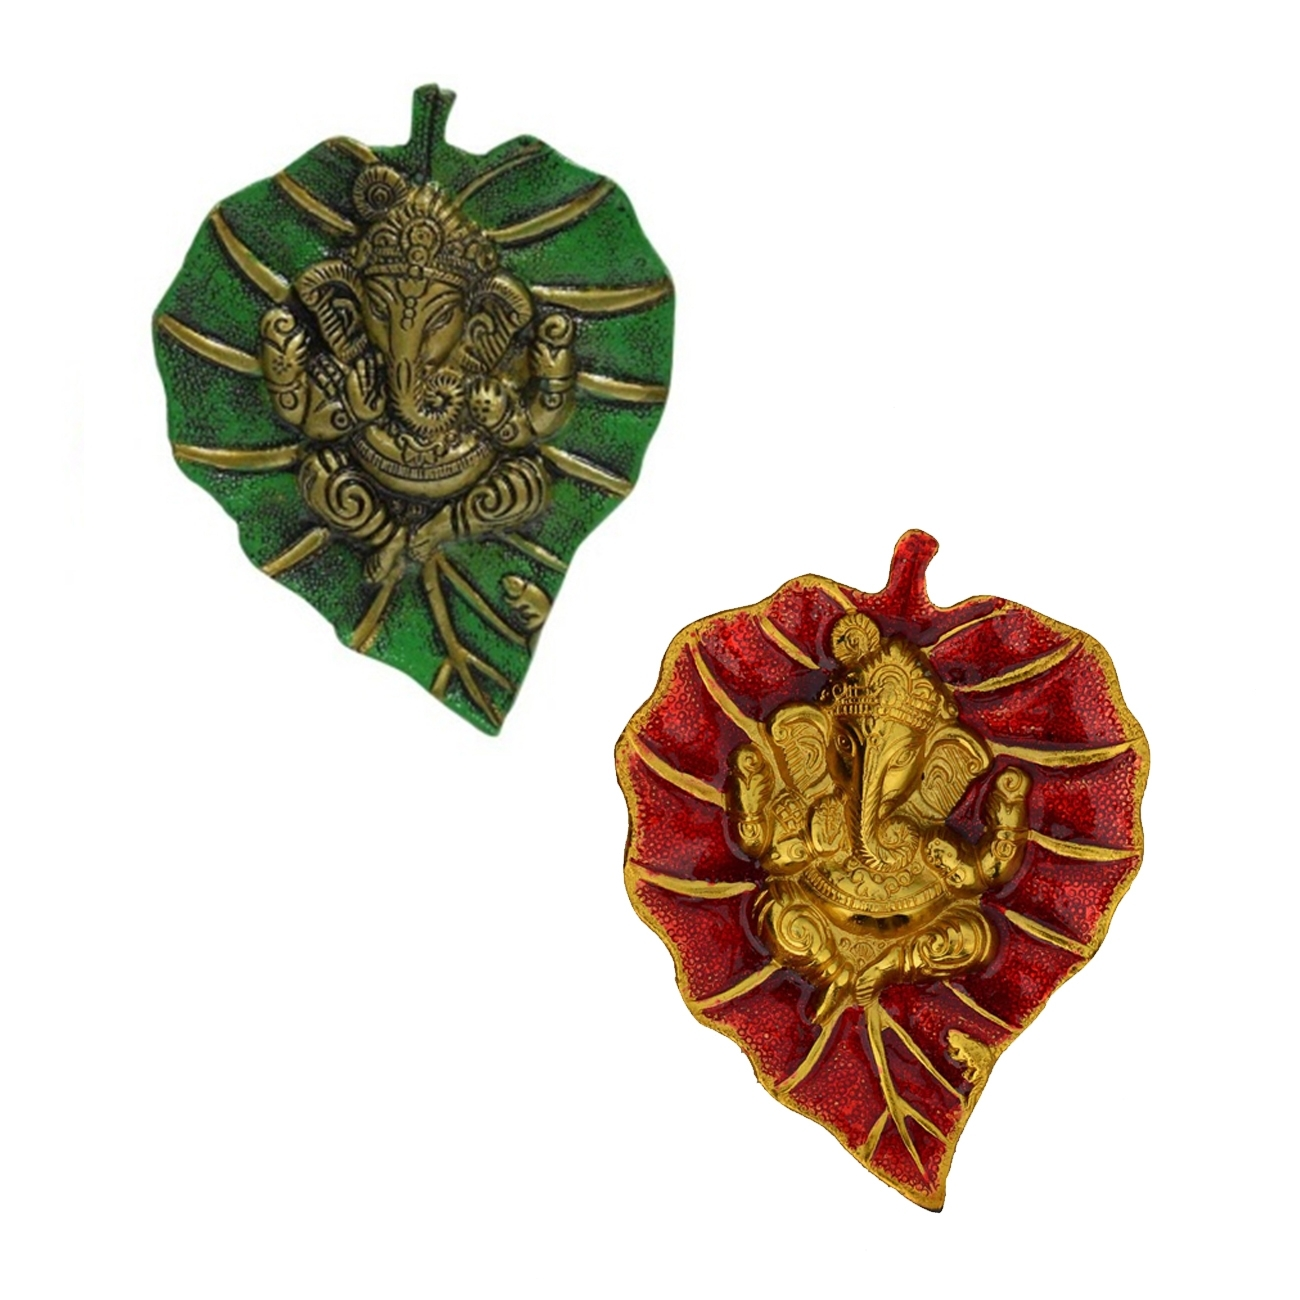 Combo of Lord Ganesha on Green and Red Leaf Indian Home Decor